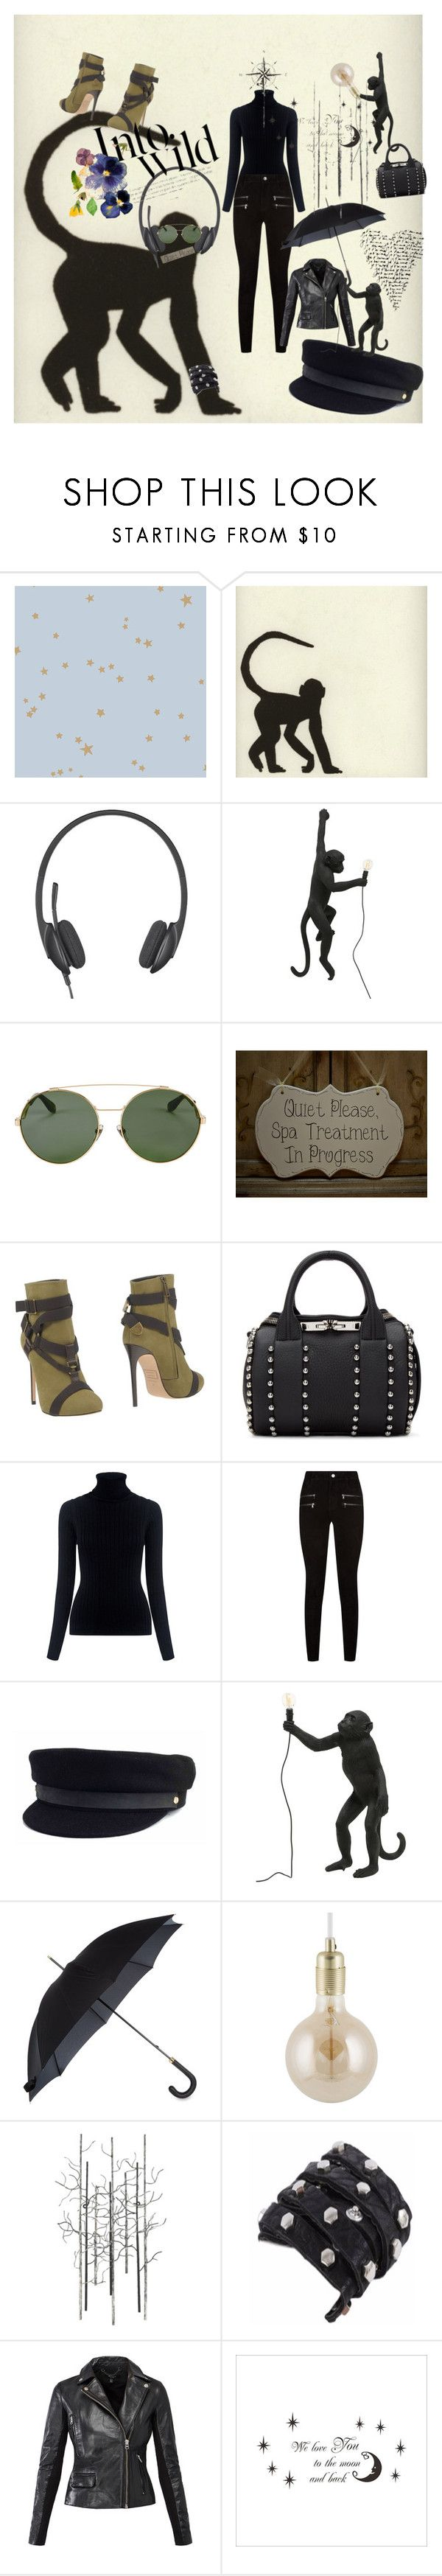 """See no evil, hear no evil"" by polka-phase ❤ liked on Polyvore featuring Cole & Son, Logitech, Seletti, Givenchy, Dsquared2, Alexander Wang, M.i.h Jeans, Paige Denim, Janessa Leone and Fulton"